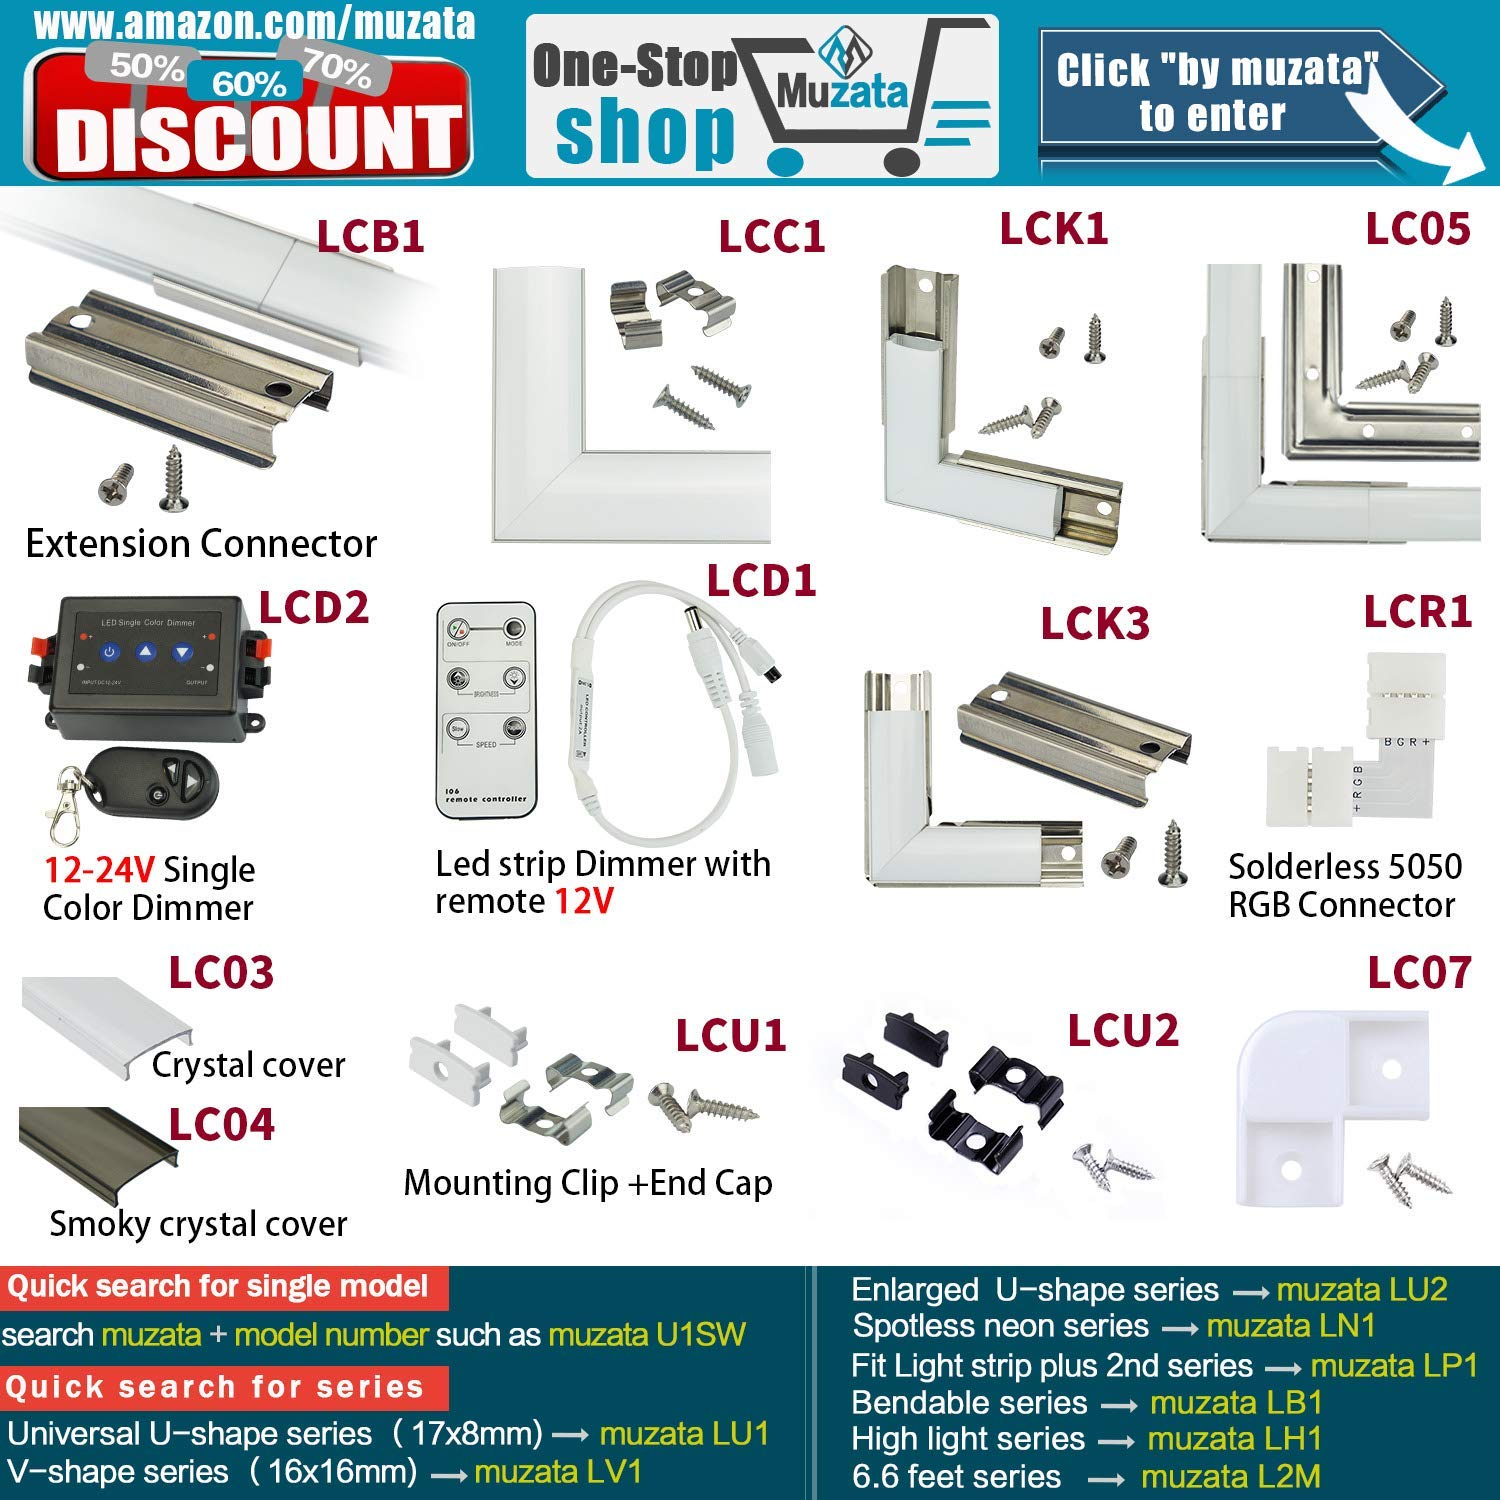 Case of 60 LCU2,Series LA1 Muzata LED Channel Mounting Clips and End Caps Suit for Most U Shape Aluminum Channel in The Market